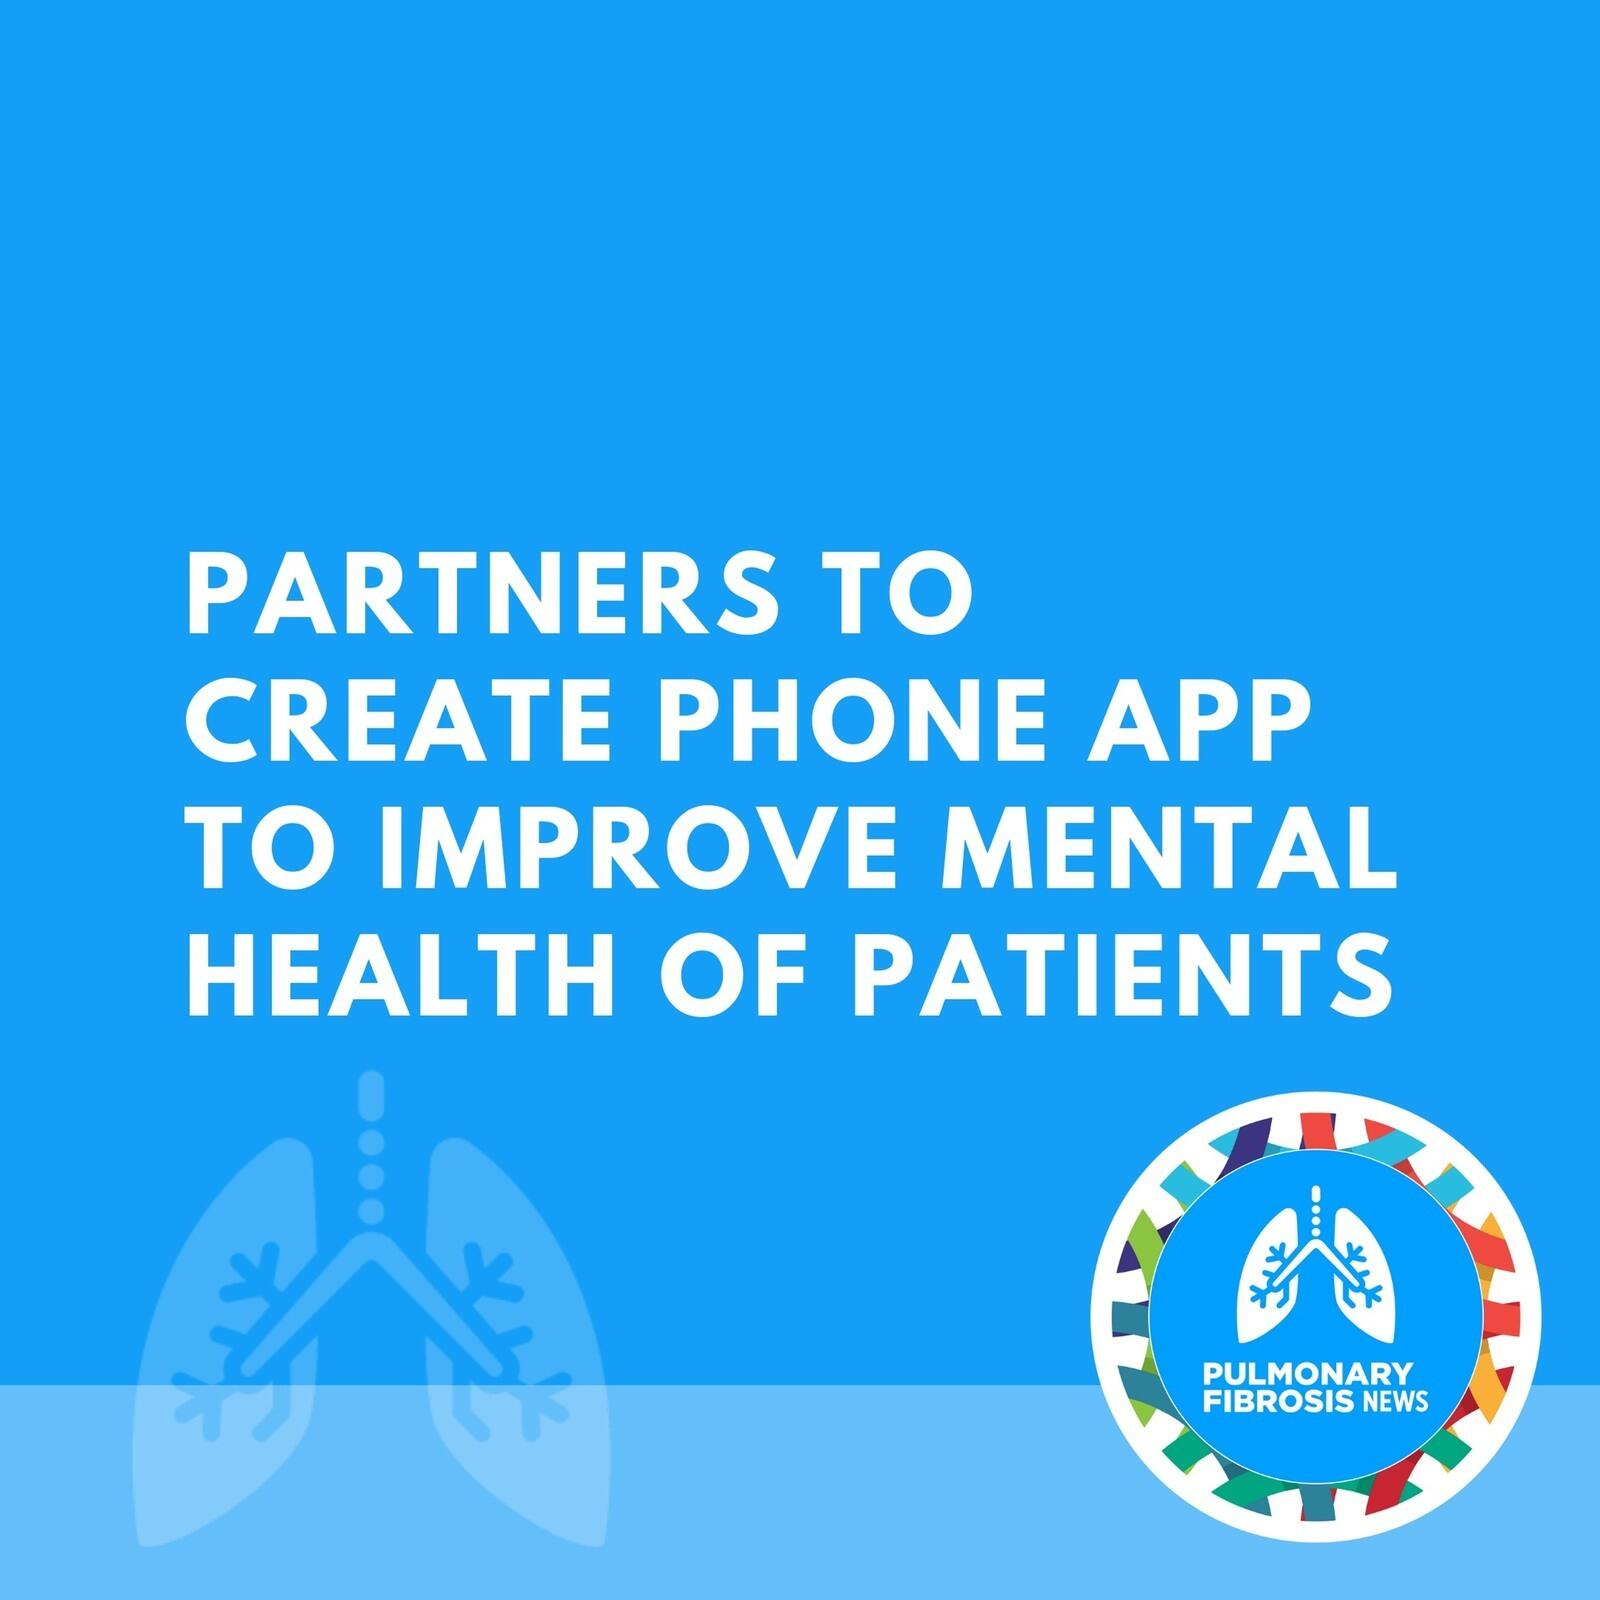 Partners to Create Phone App to Improve Mental Health of Patients